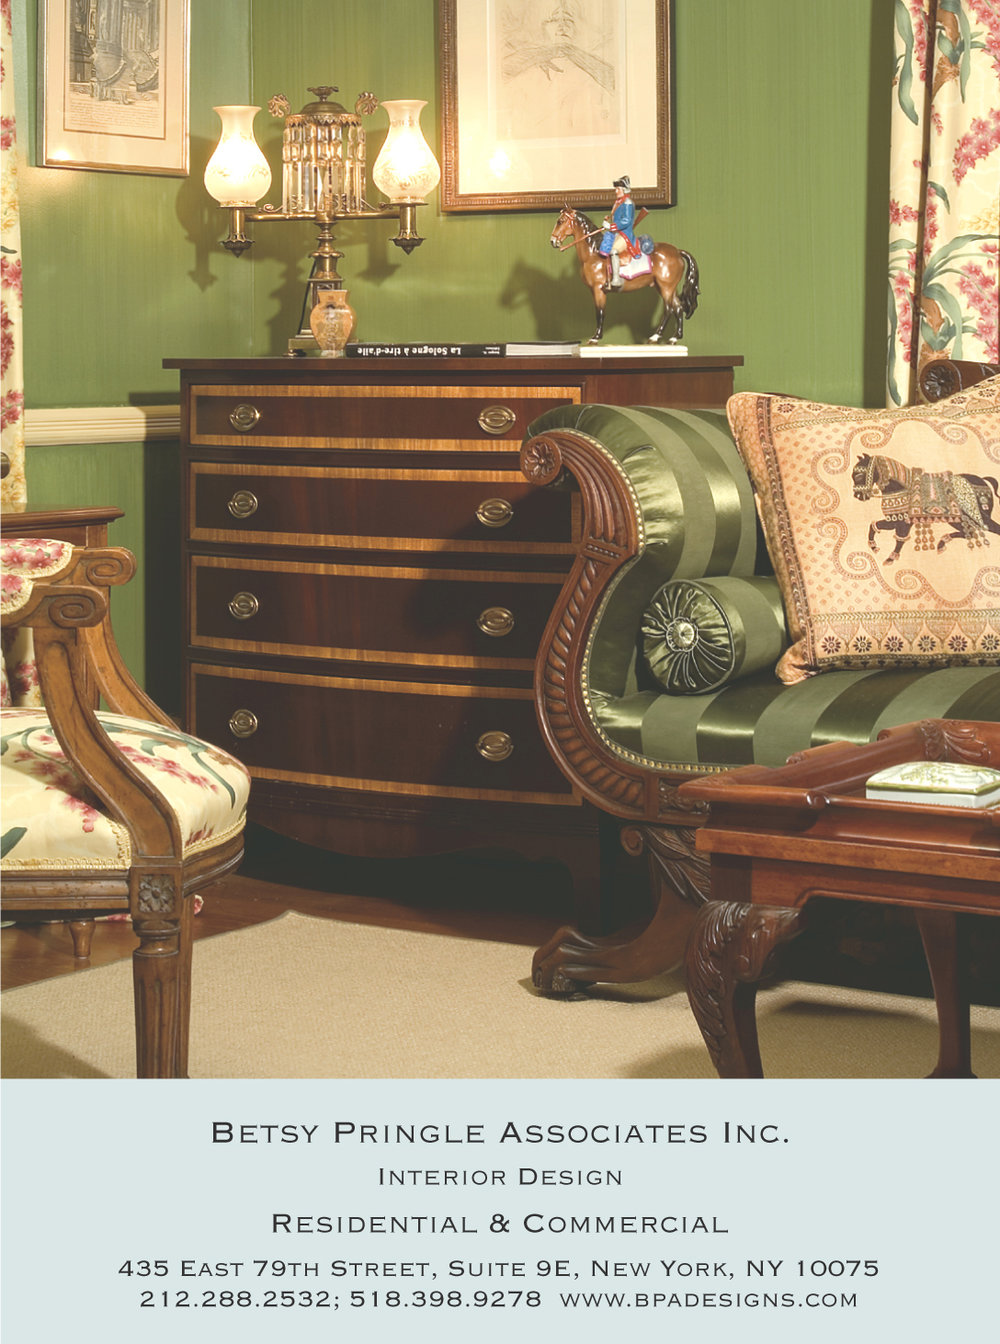 BetsyPringle_InteriorDesign_Ad